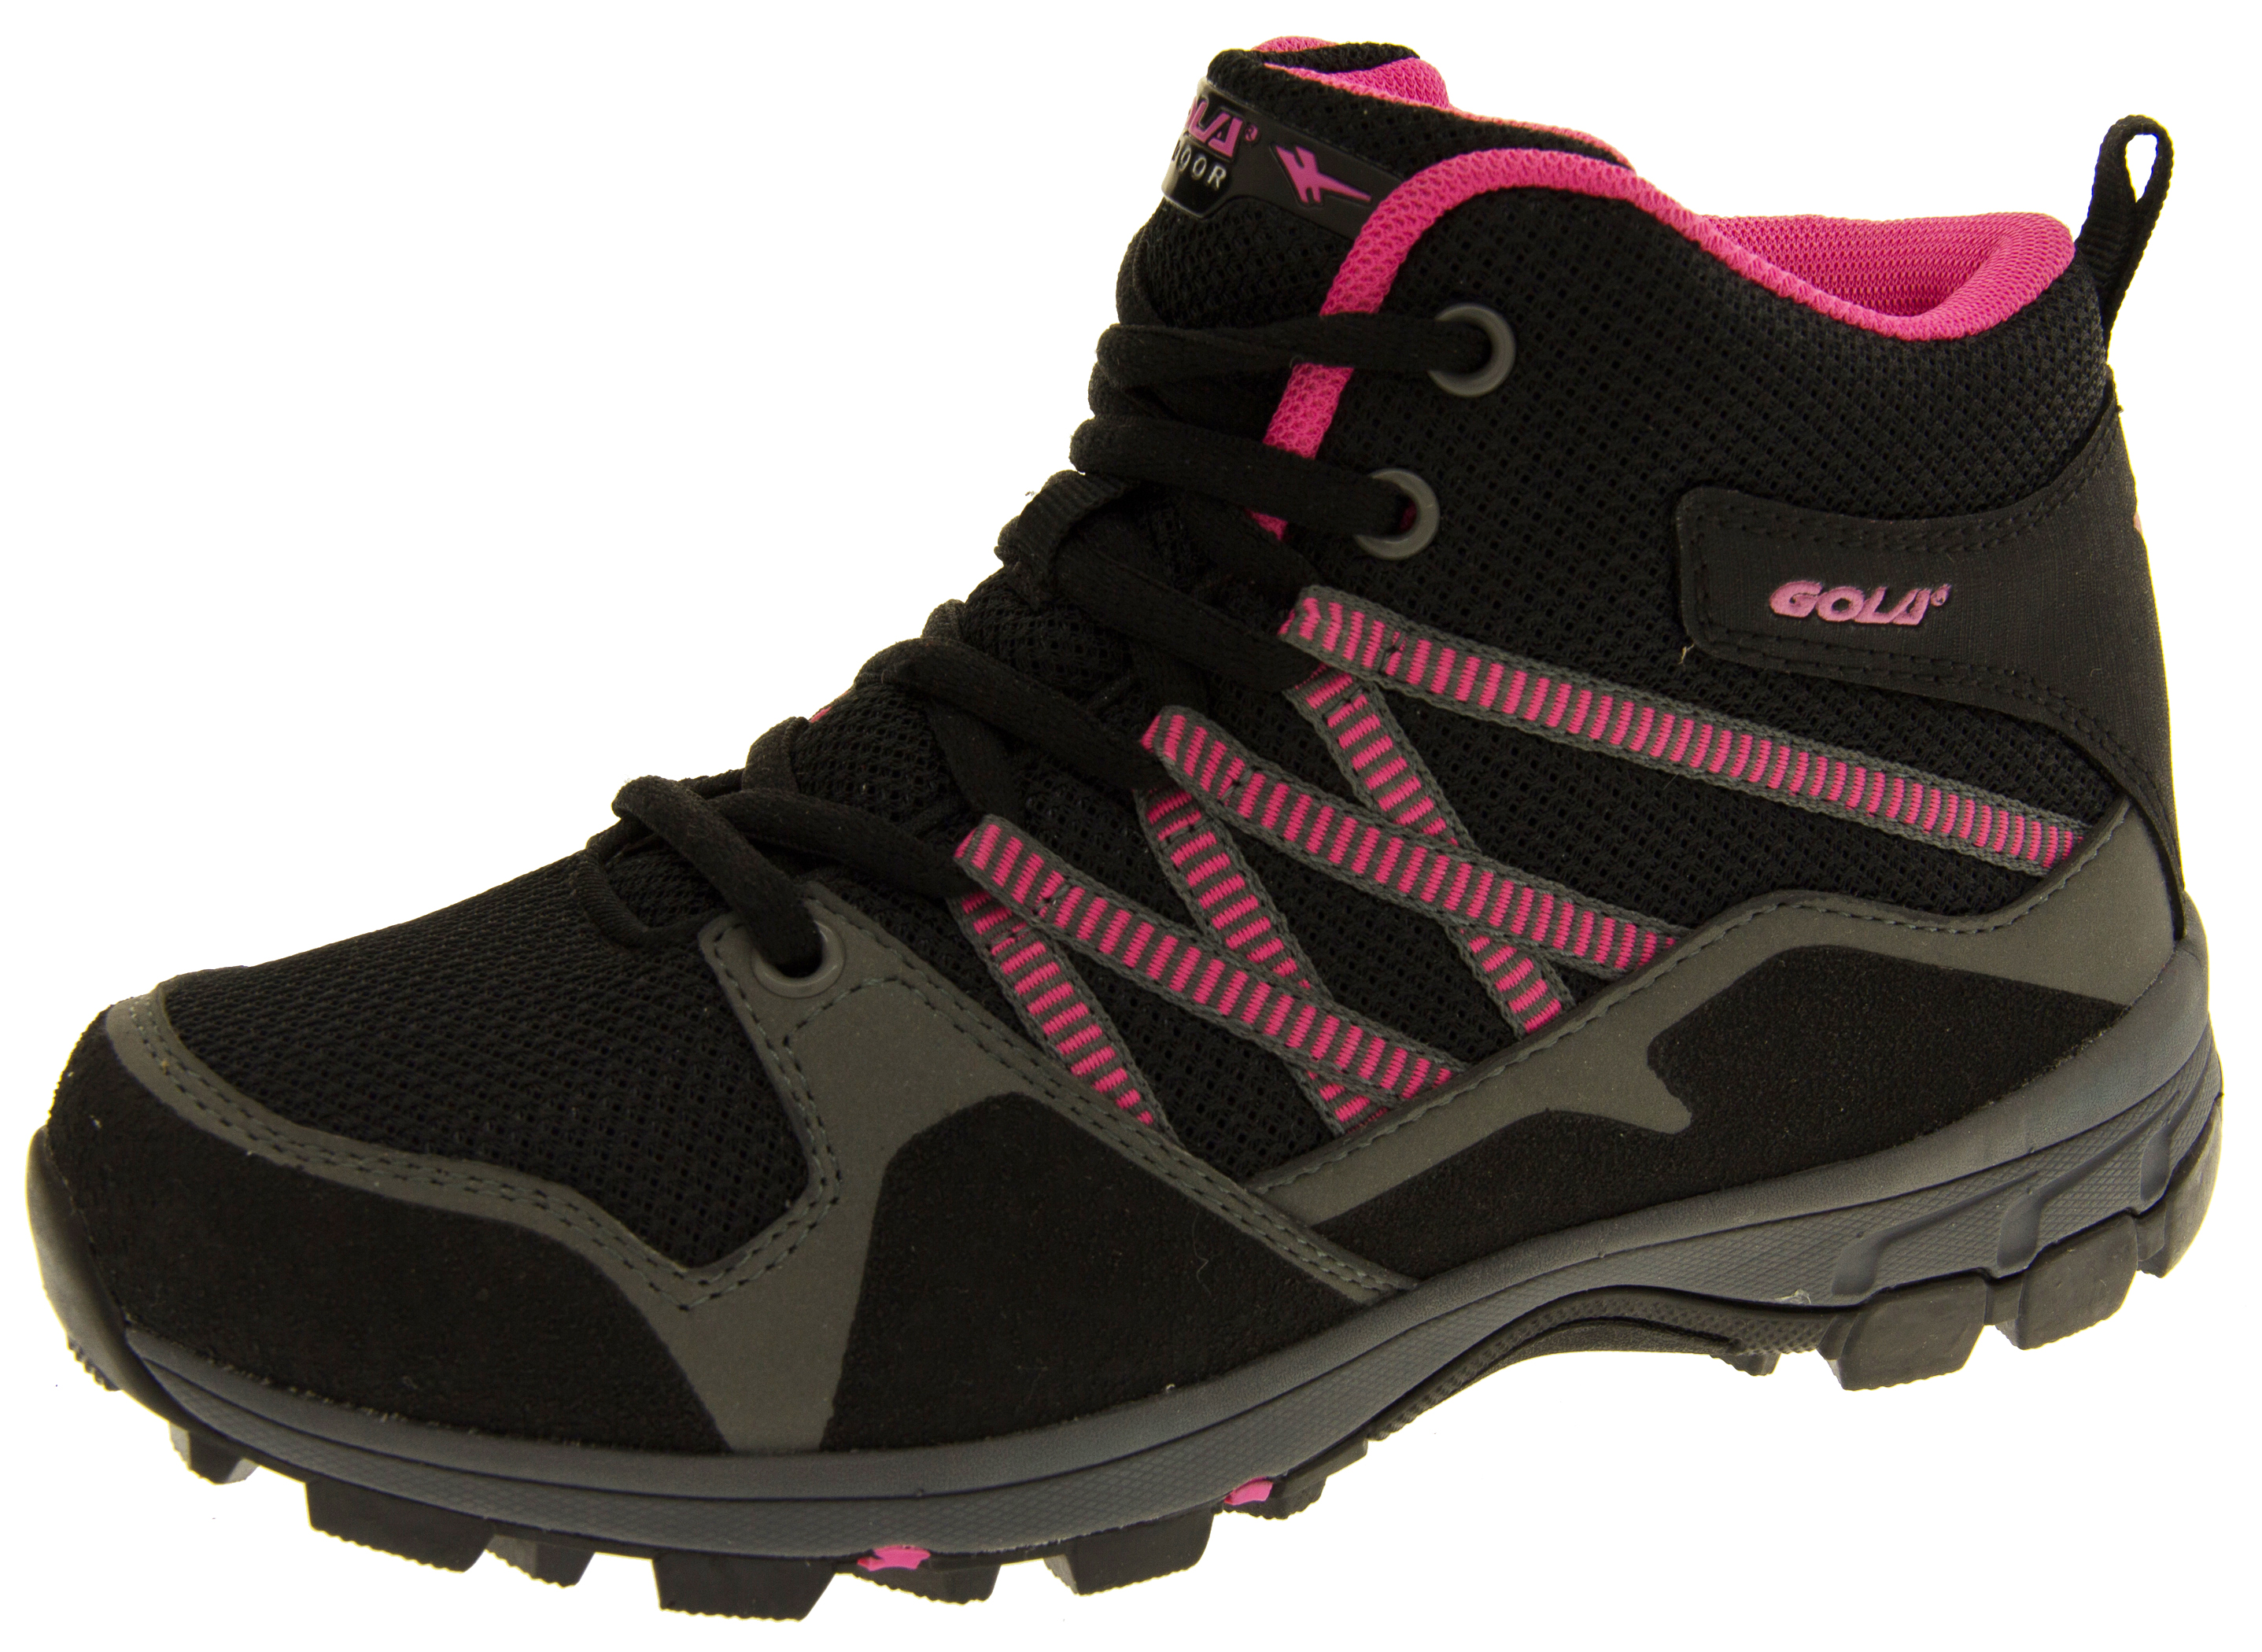 gola outdoor walking shoes walking hiking trail